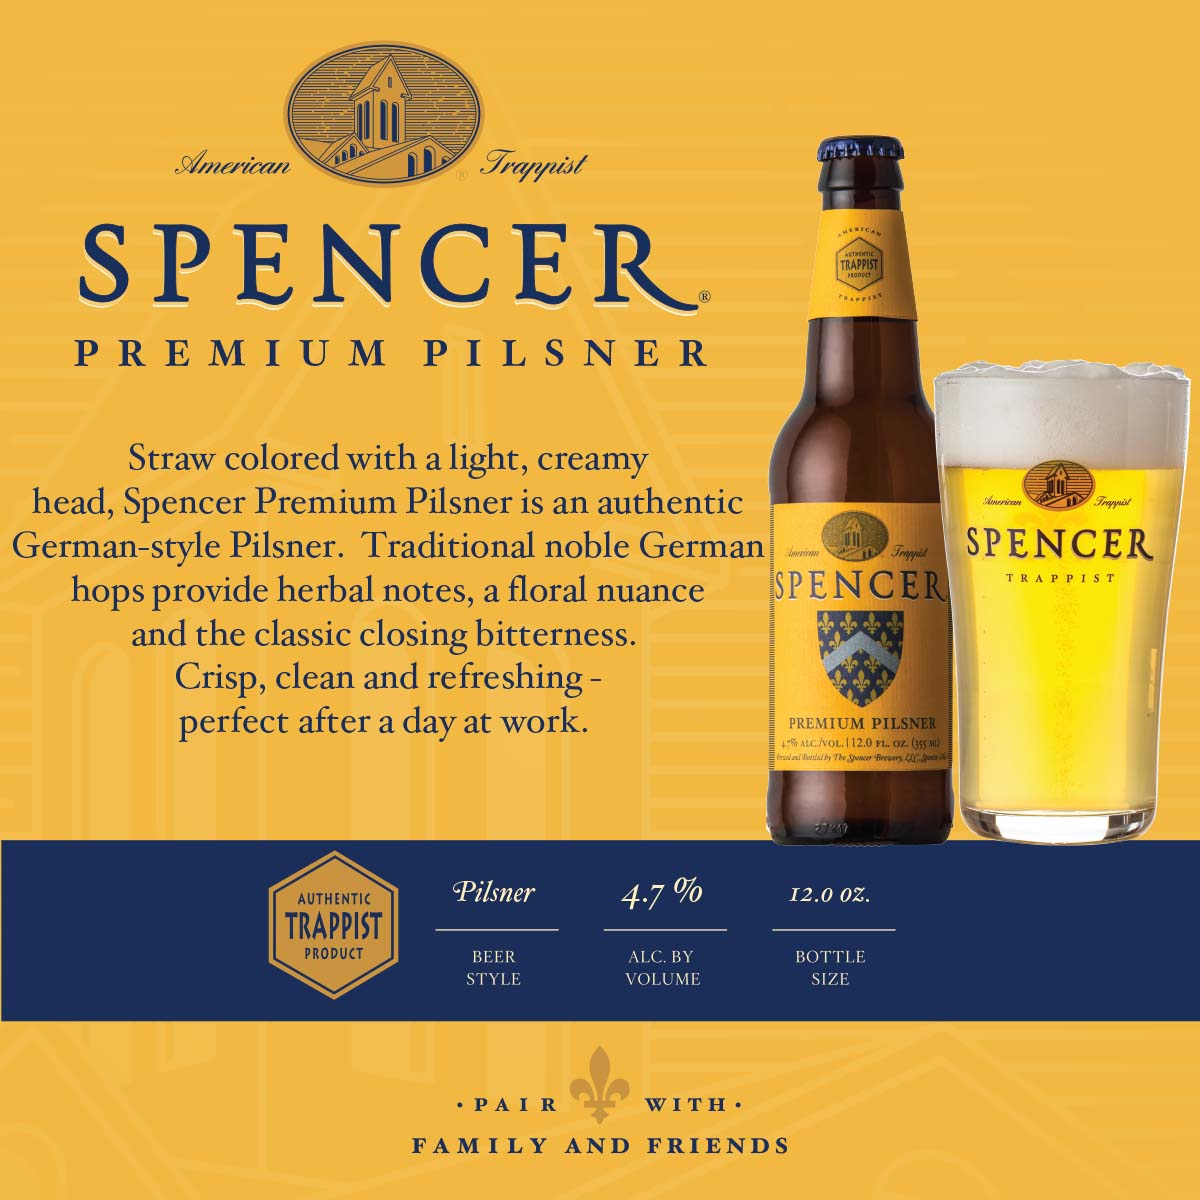 Premium Pilsner Shelf Talker 4x4